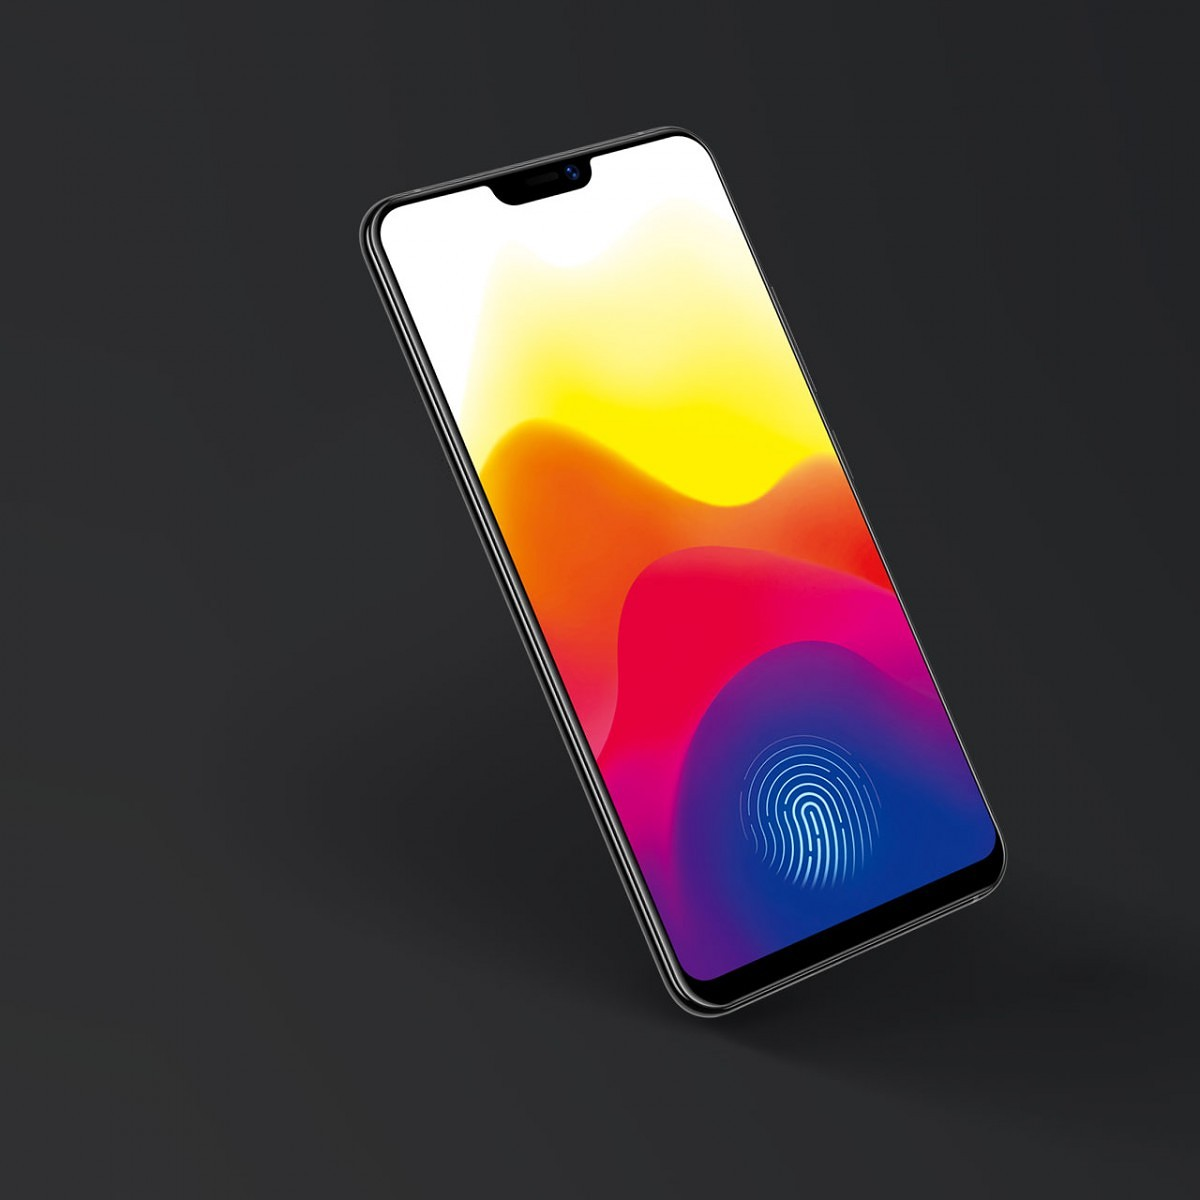 Vivo X21 launched in India with in-display fingerprint